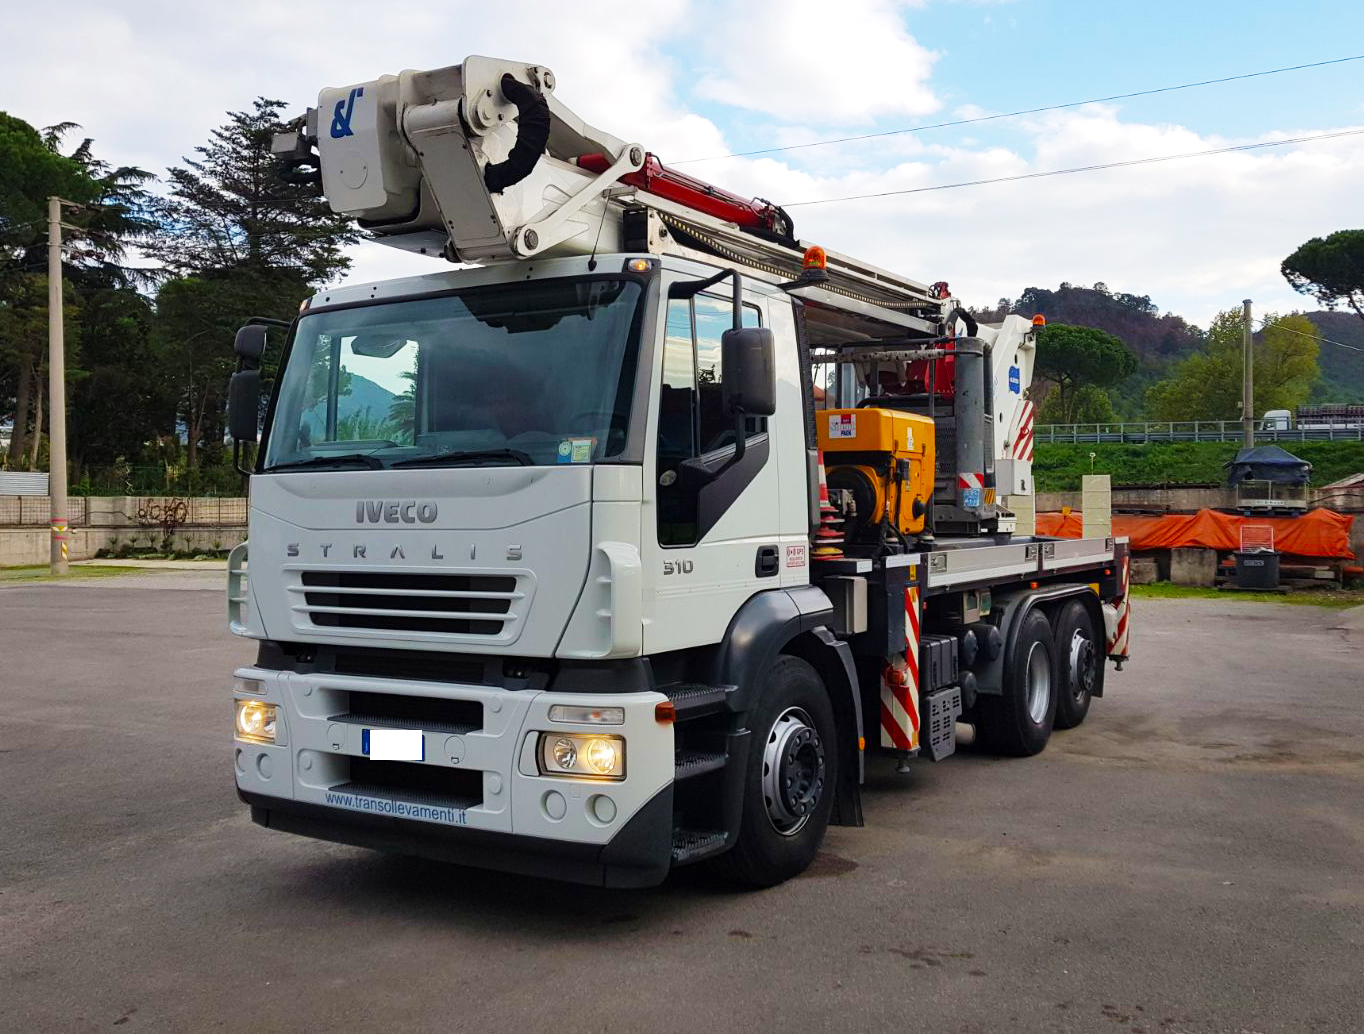 IVECO Stralis 310 a Camion oltre 7,5 Ton